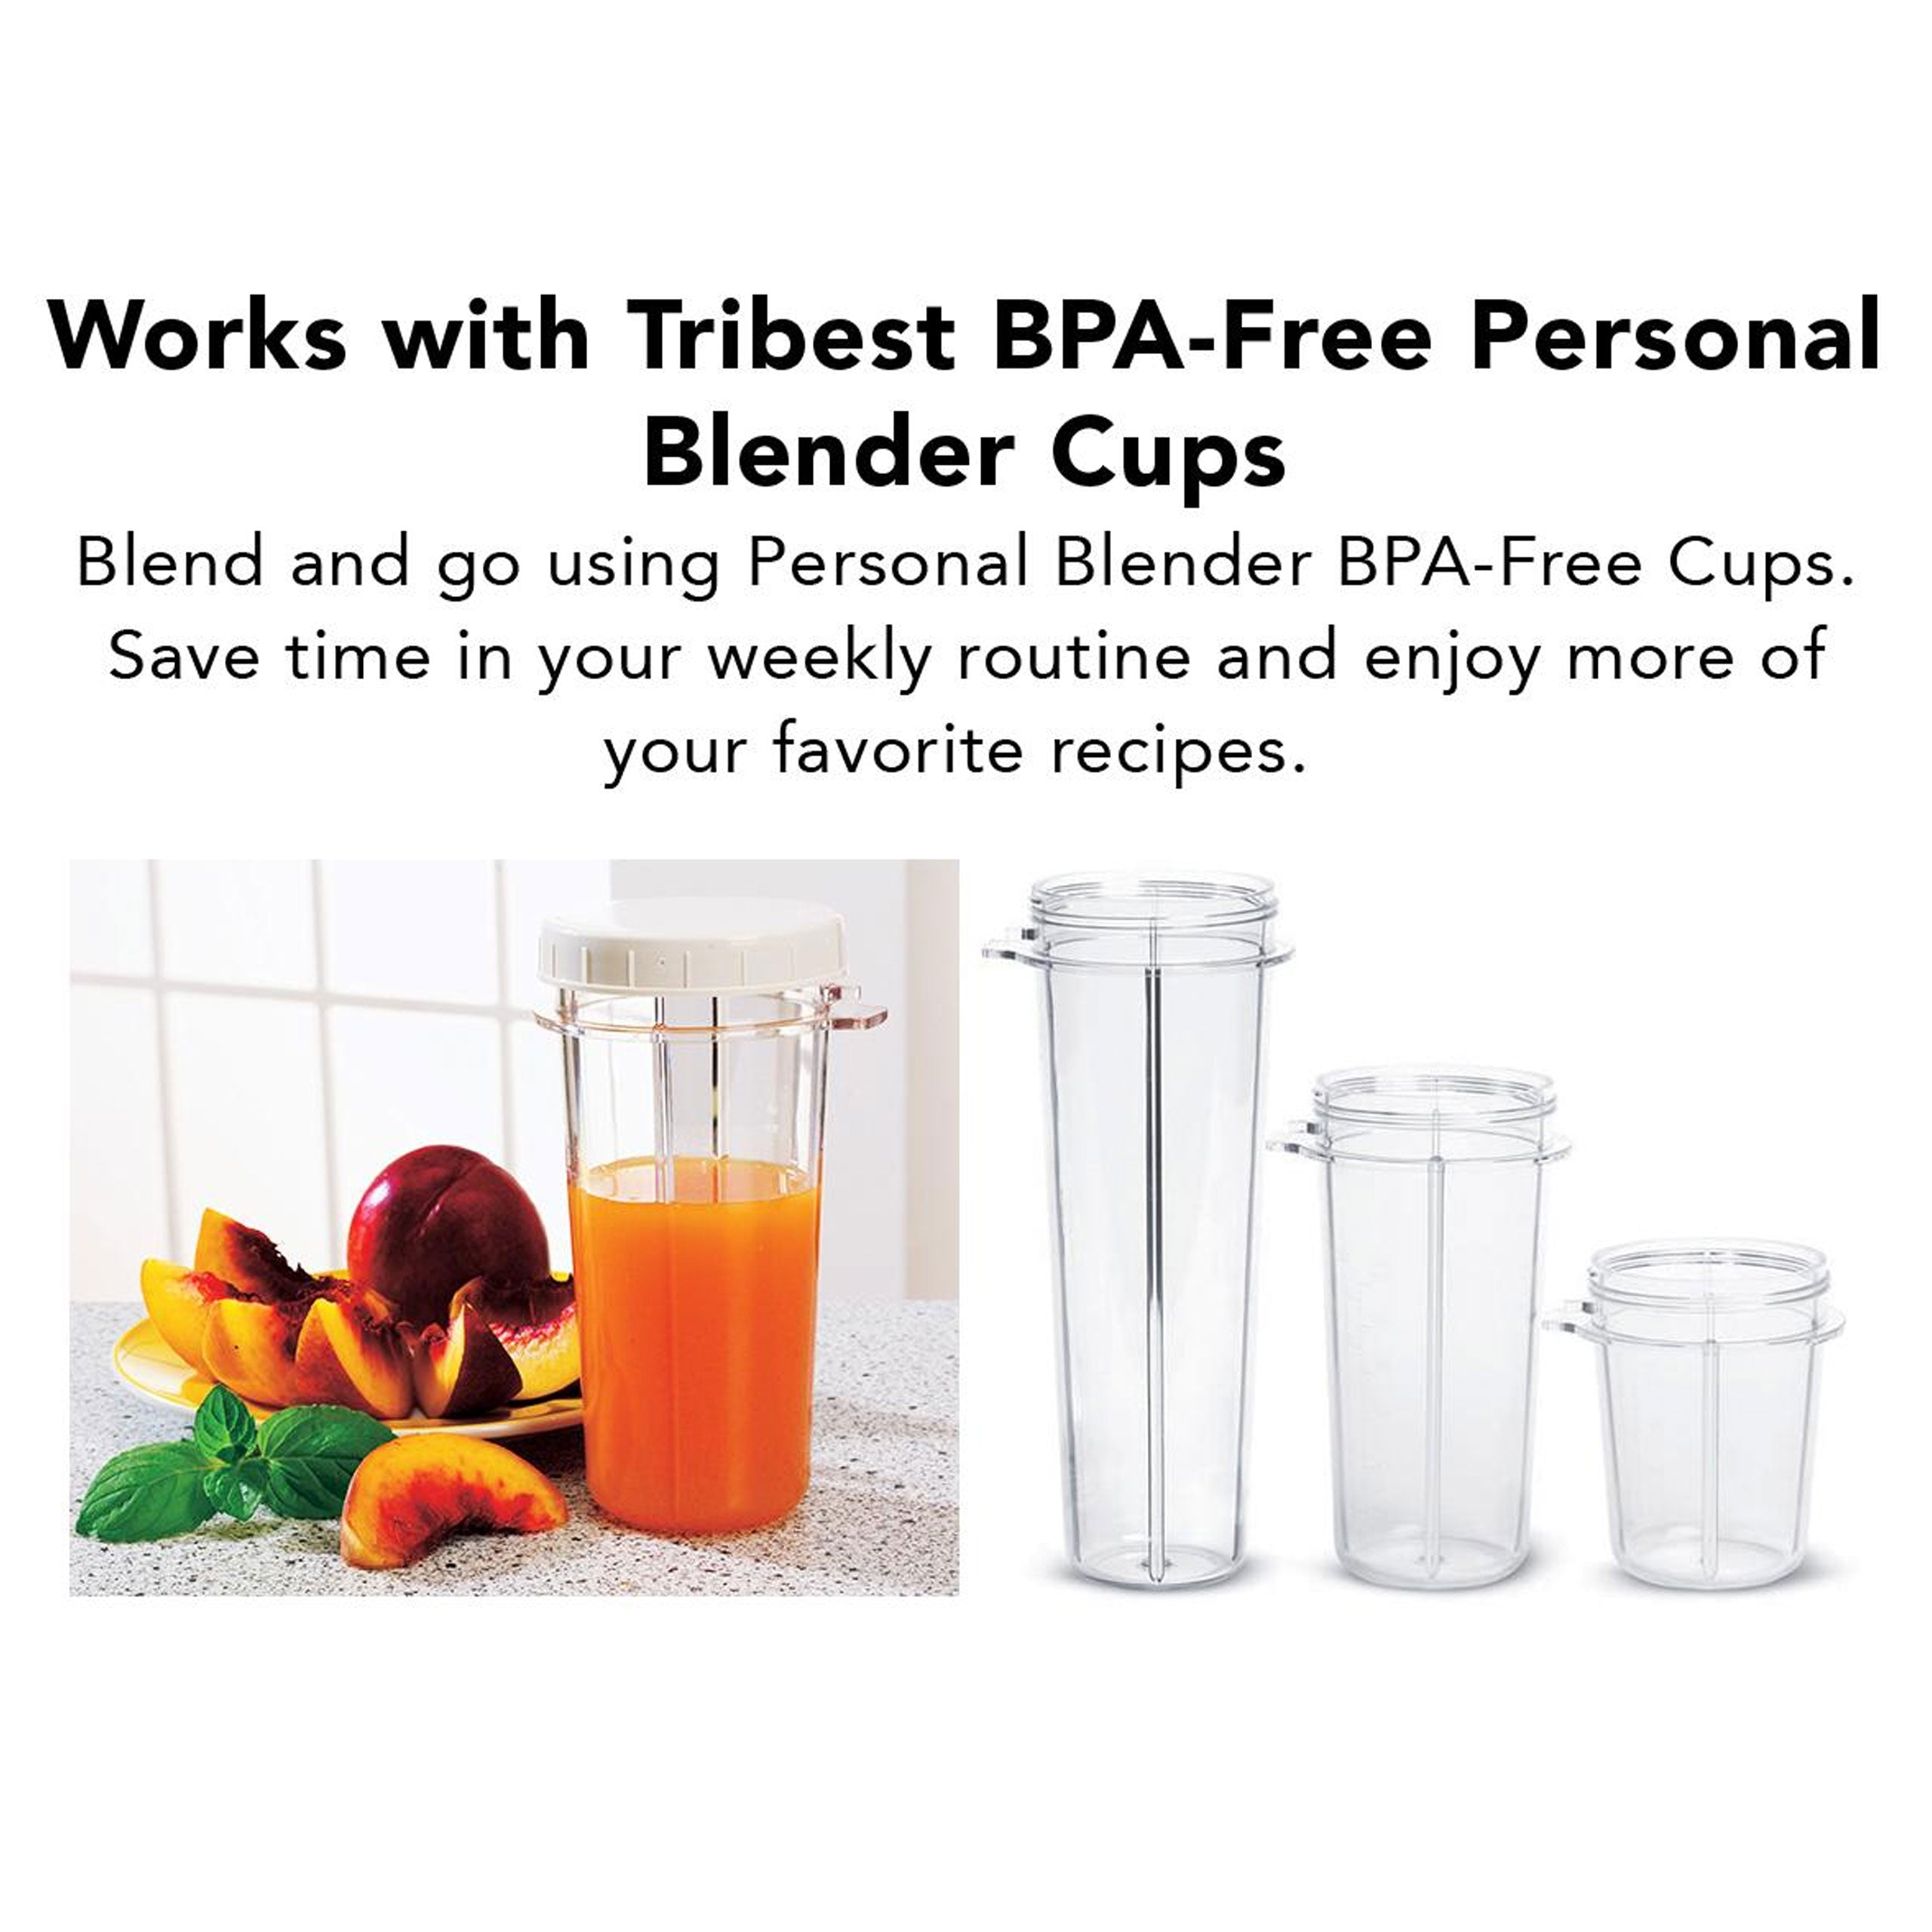 Personal Blender II Mason Jar Ready (Family16-Piece Set) in Gray PB-420GY-A - Works with Personal Blender Cups from Tribest - Tribest